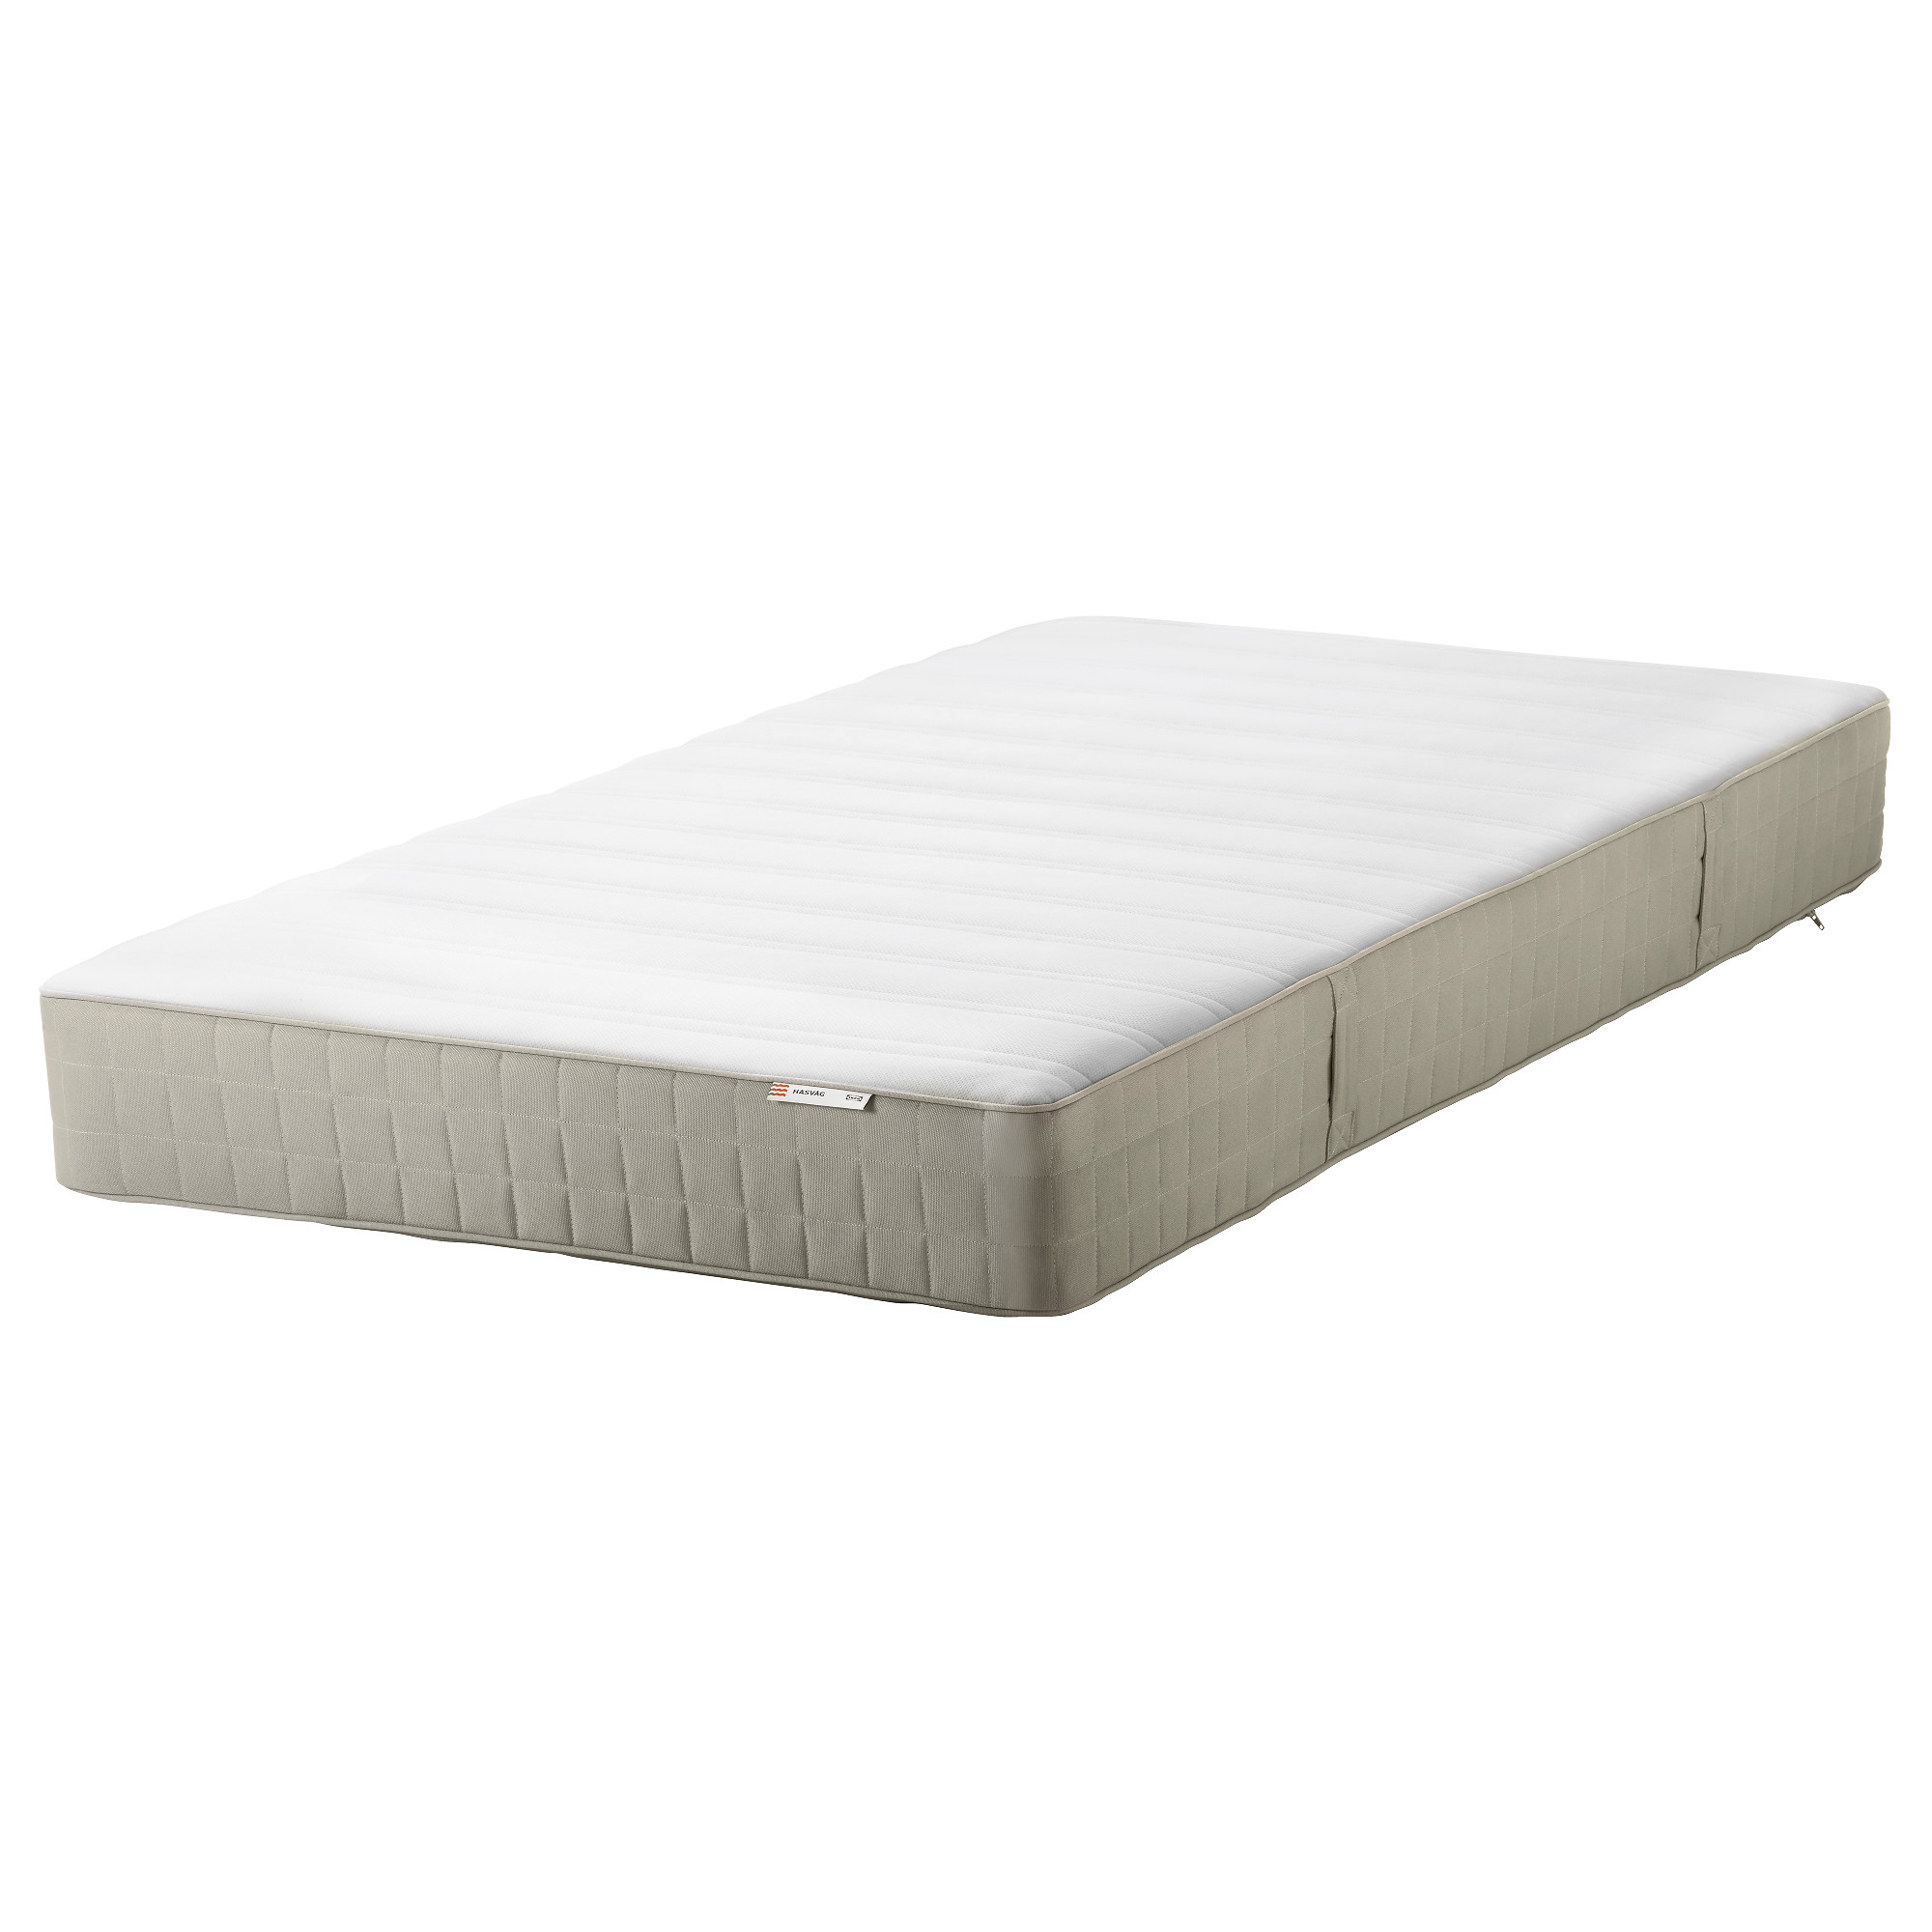 dp bed mattress twin toys amazon addison kidkraft white com games